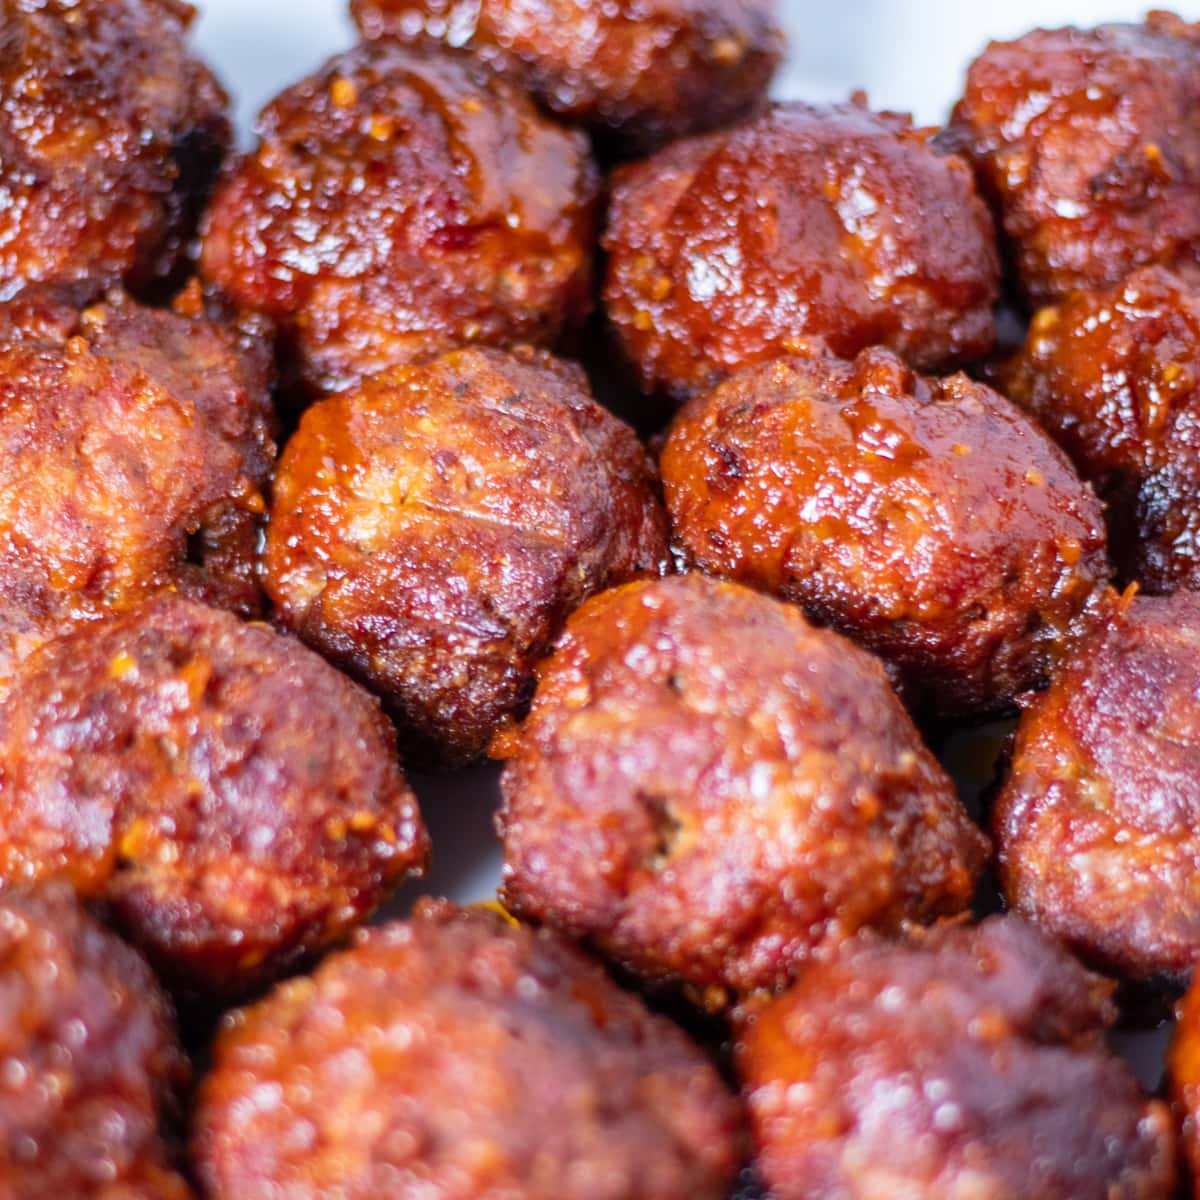 Close up of meatballs cooked in BBQ sauce